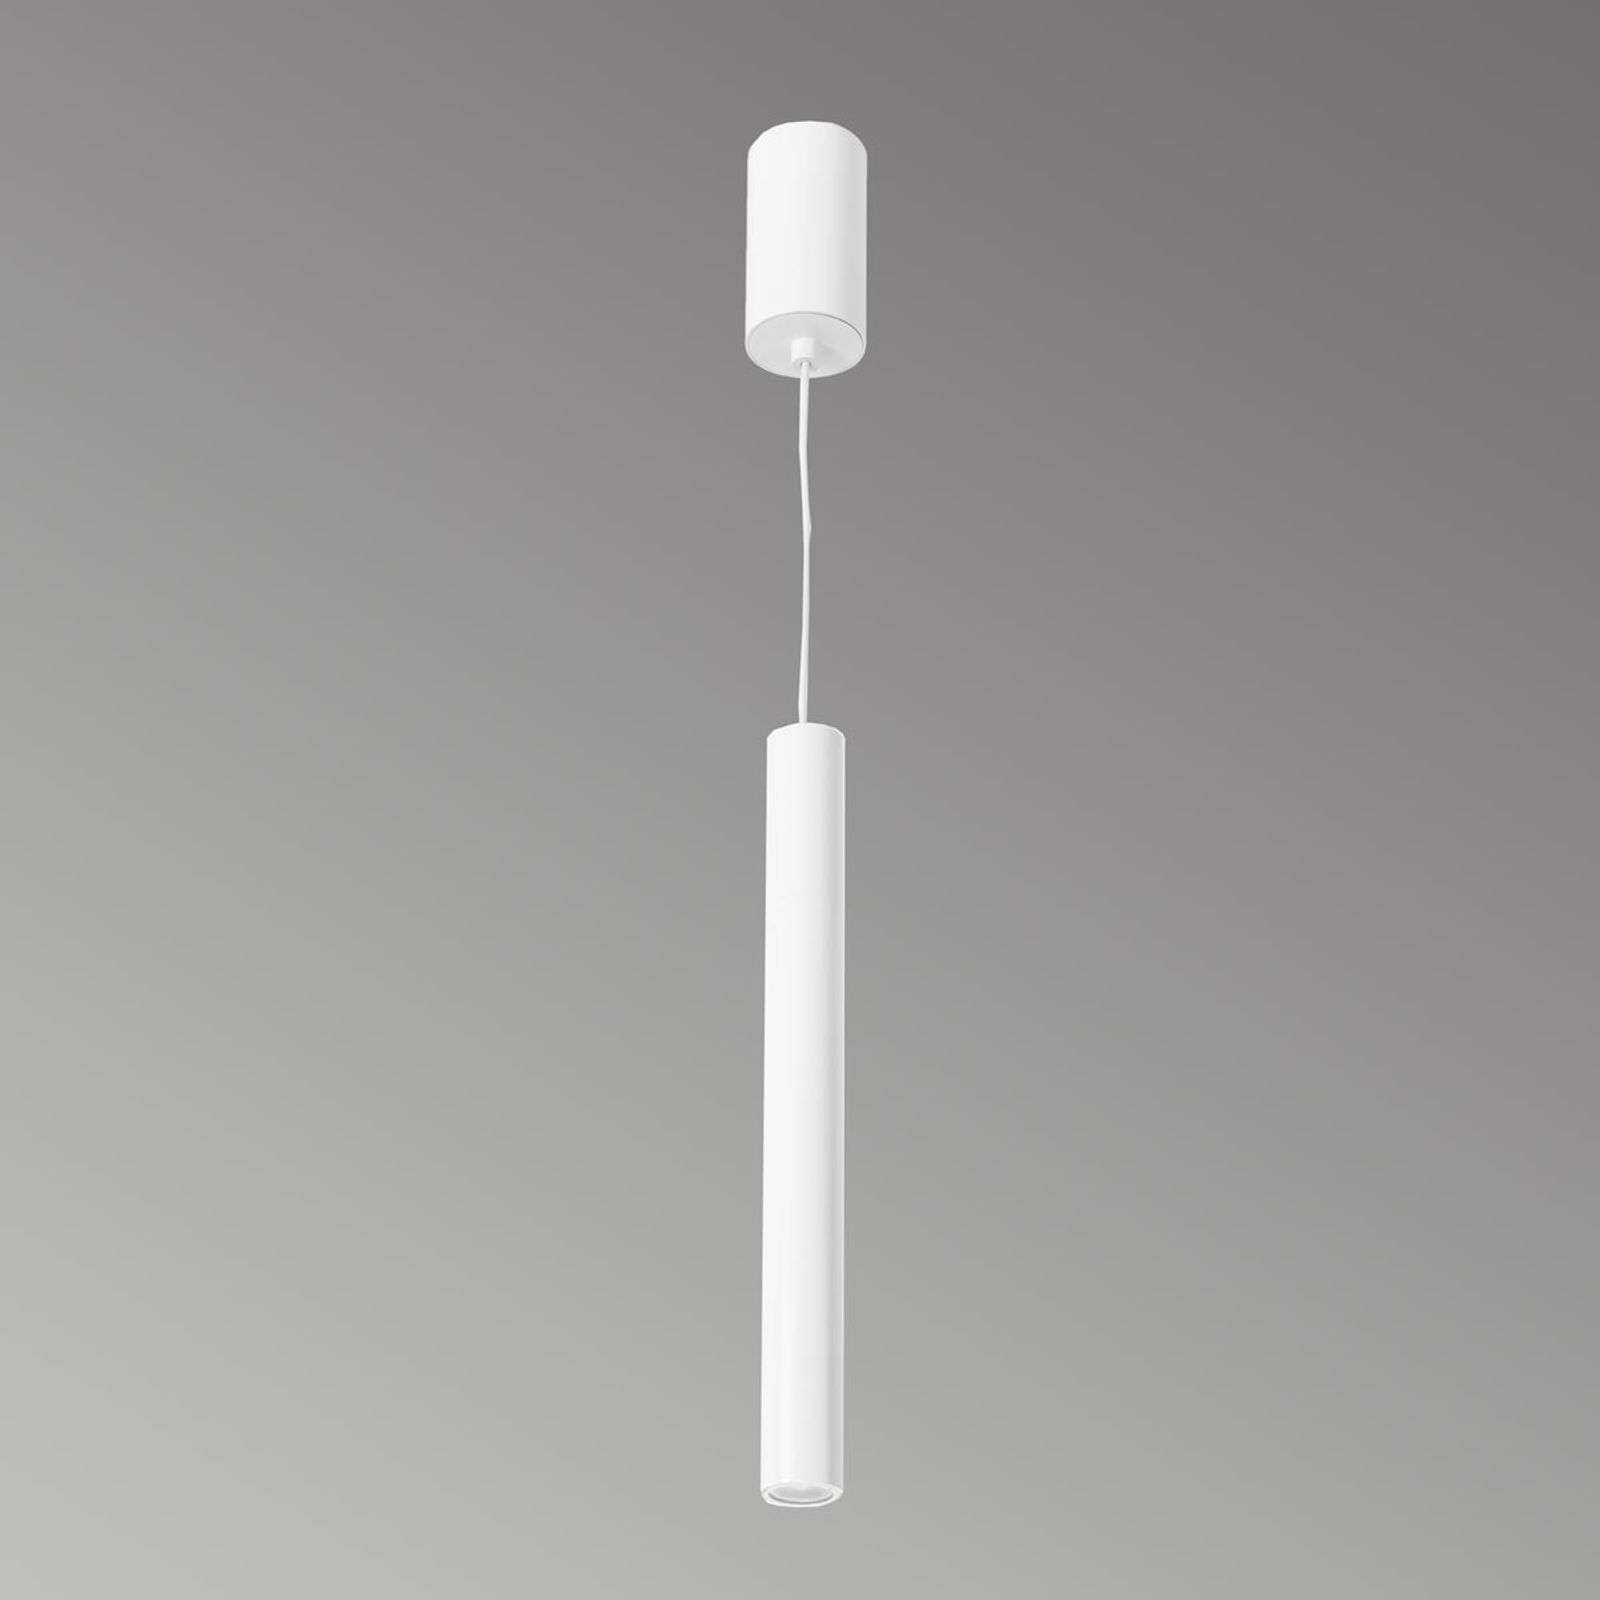 Suspension LED tendance Stylus